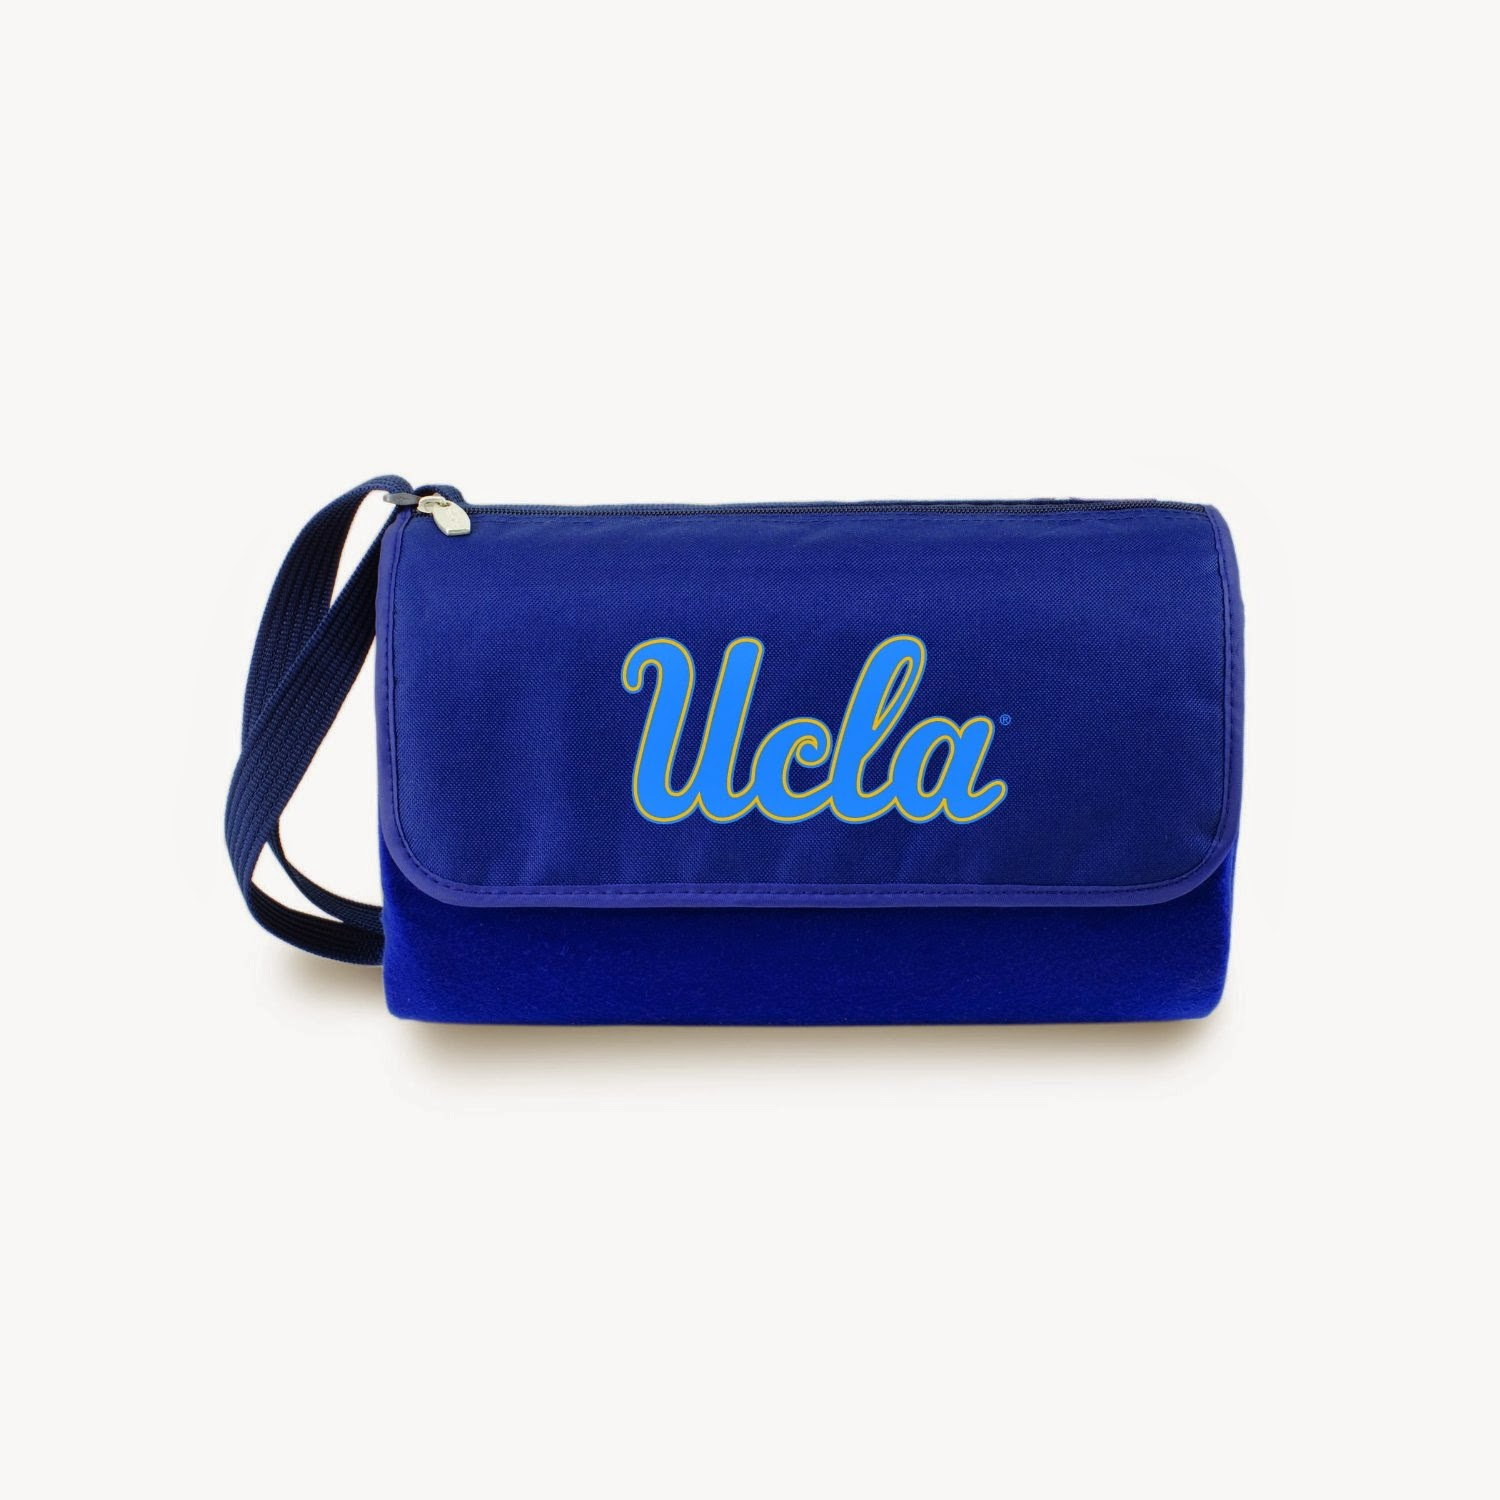 UCLA Bruins NCAA Blanket Tote